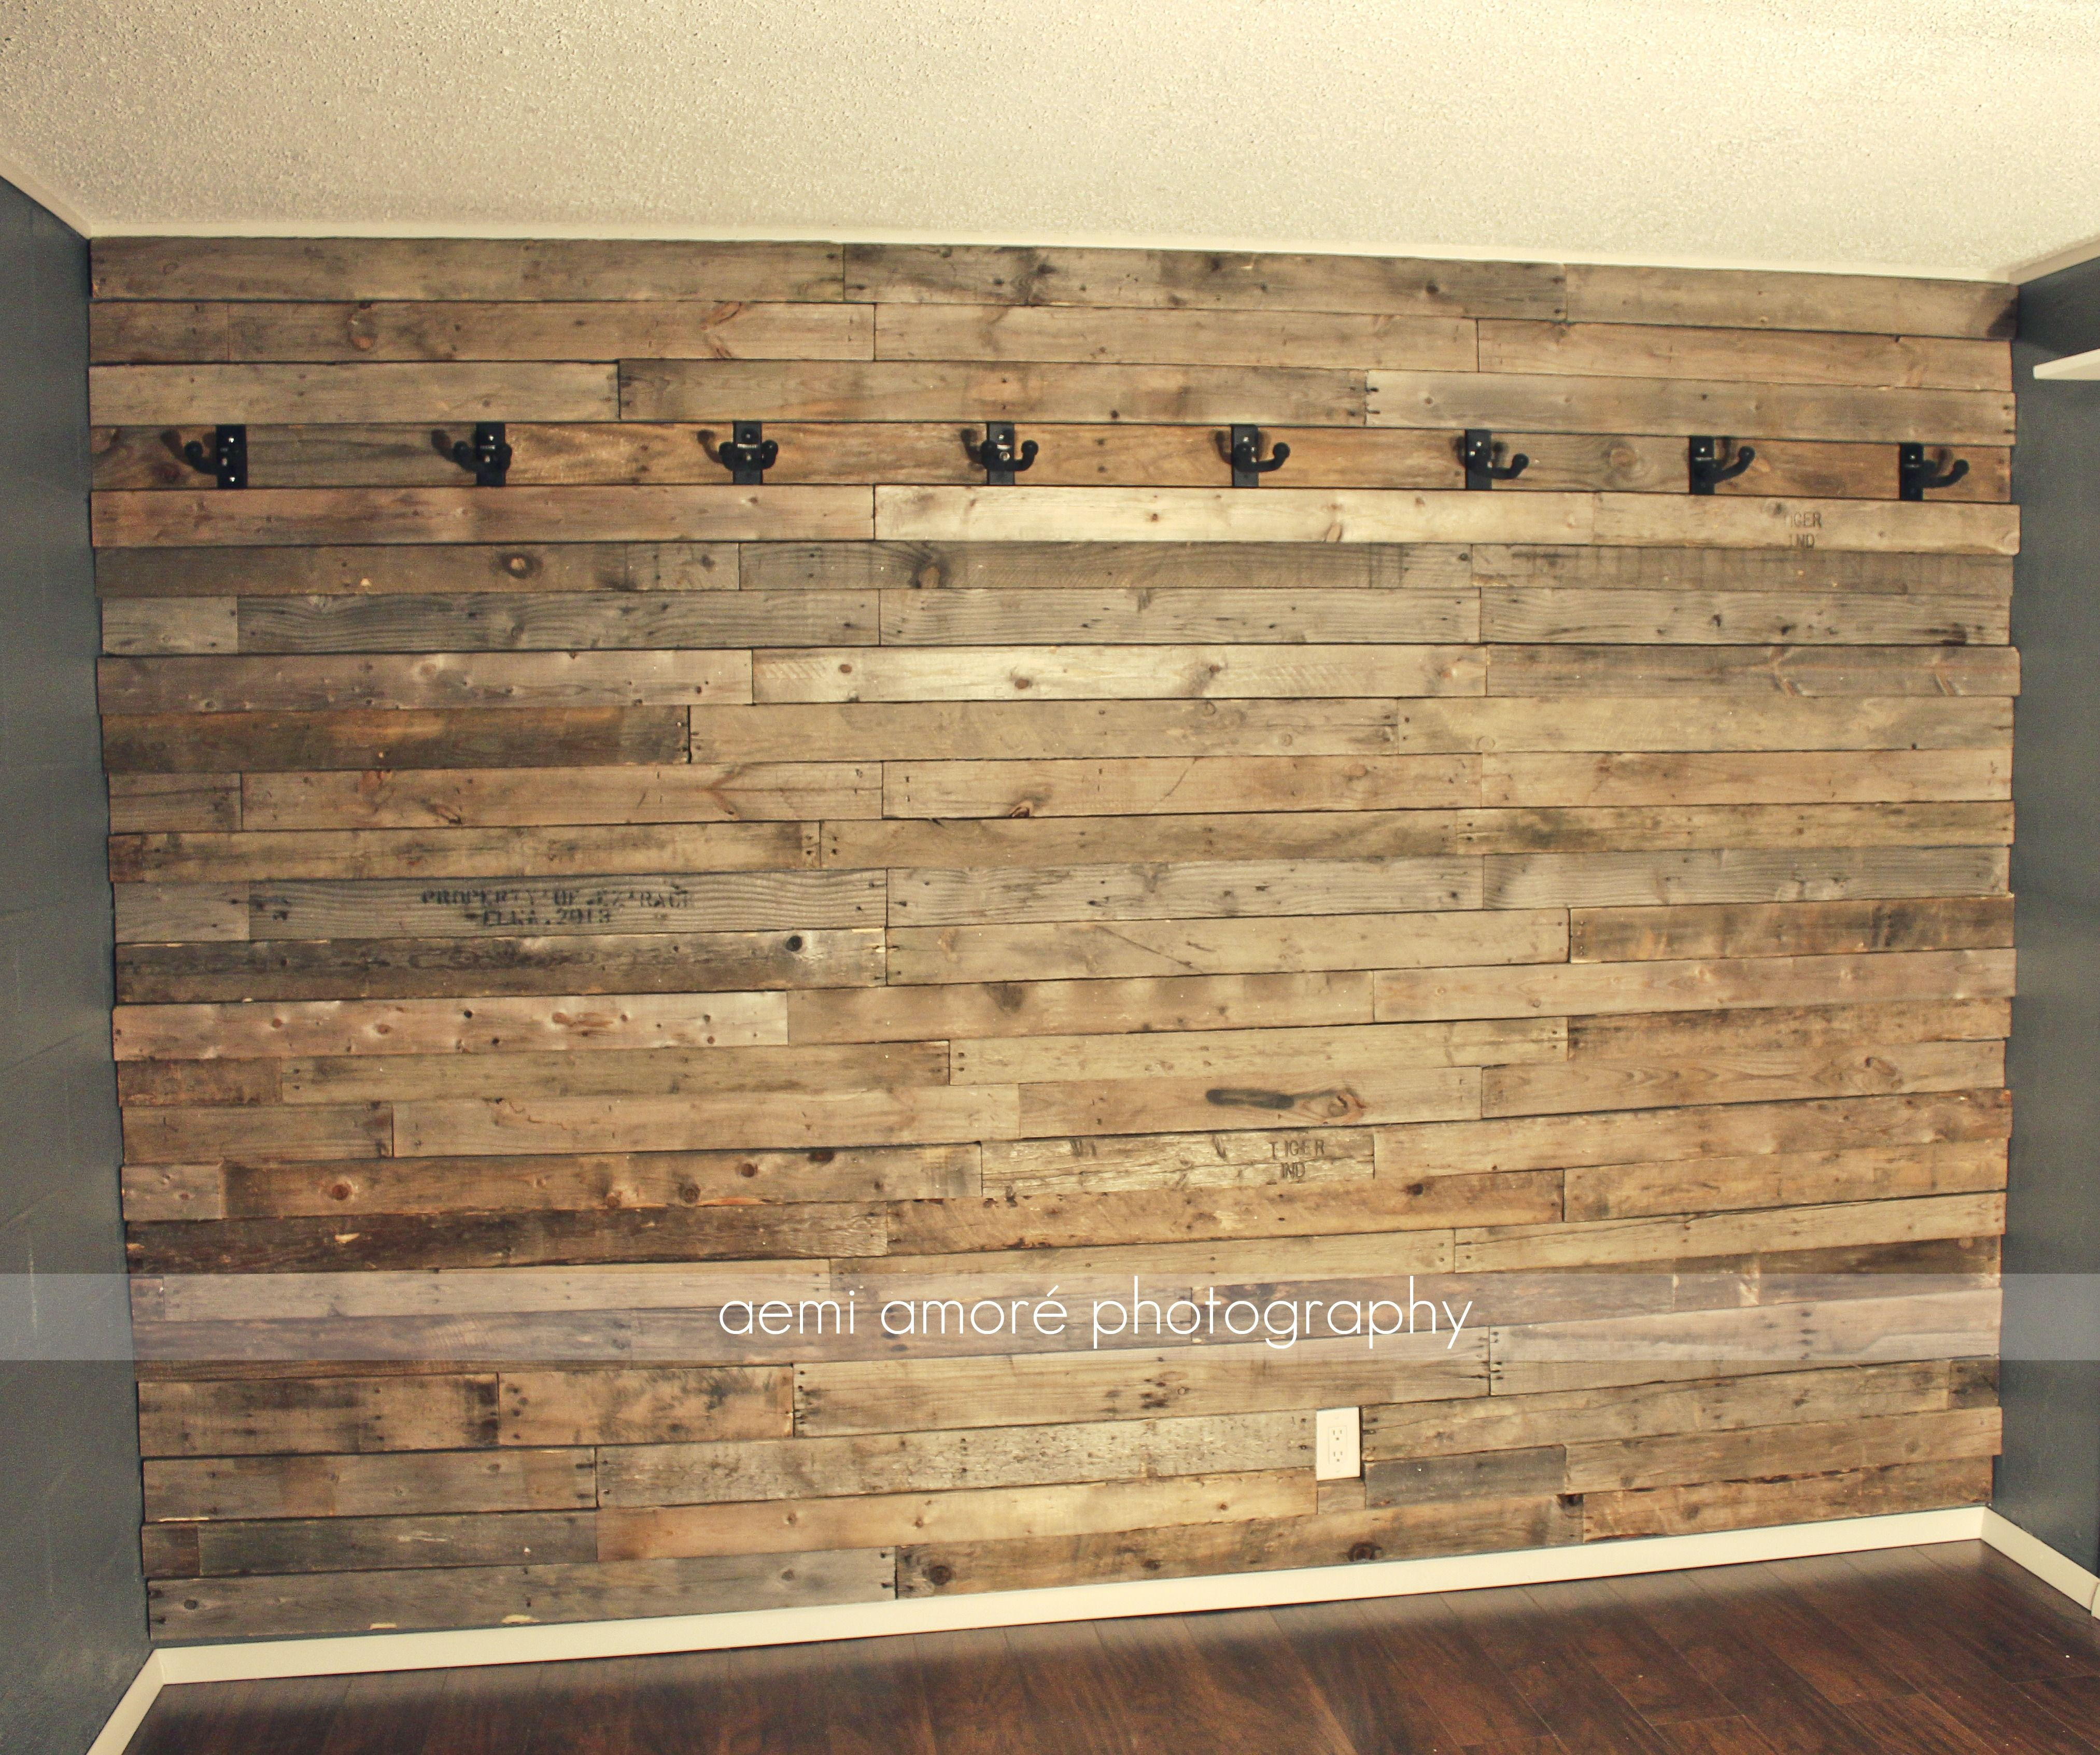 Pallet Wall Idea Custom Man Cave Jam Room Music Room Bar Game Room I Made This Wooden Rustic Pallet Wall For My Husband To Hang All Studio Music